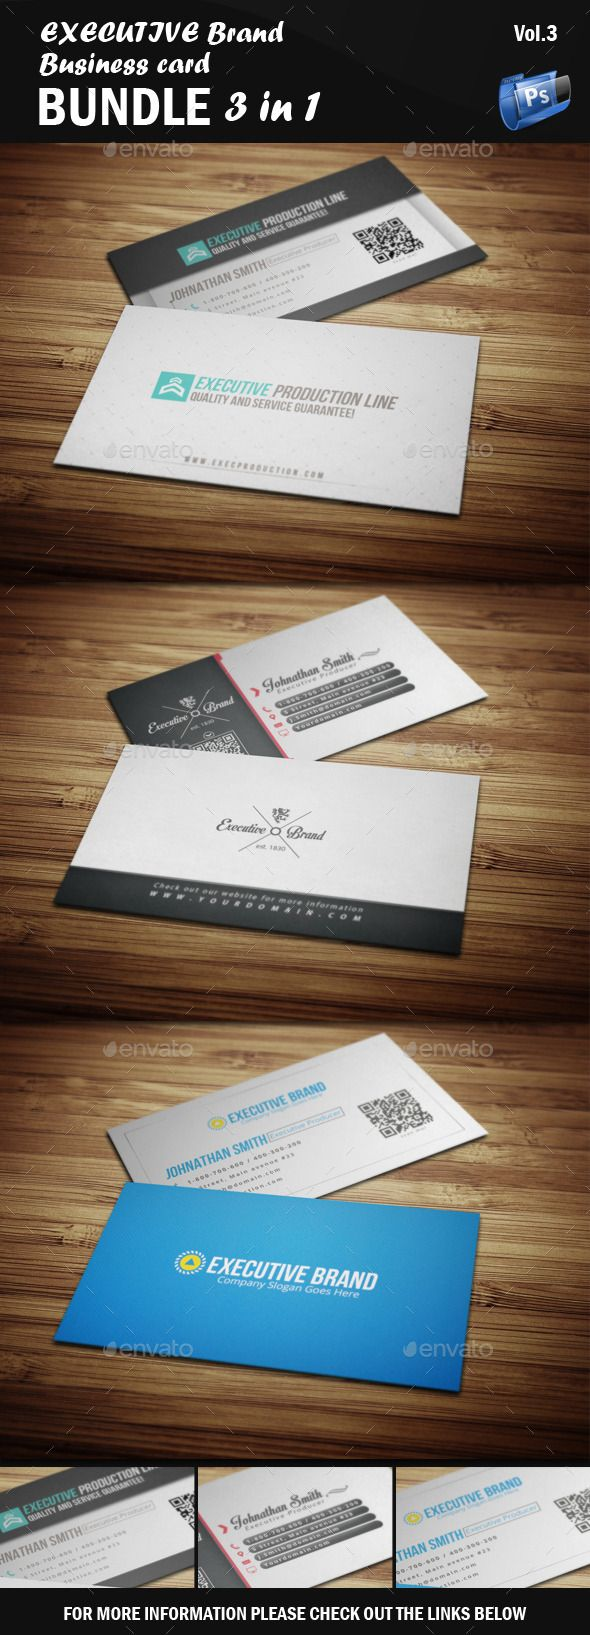 Executive Business Card - Bundle 3 in 1 [Vol.3]